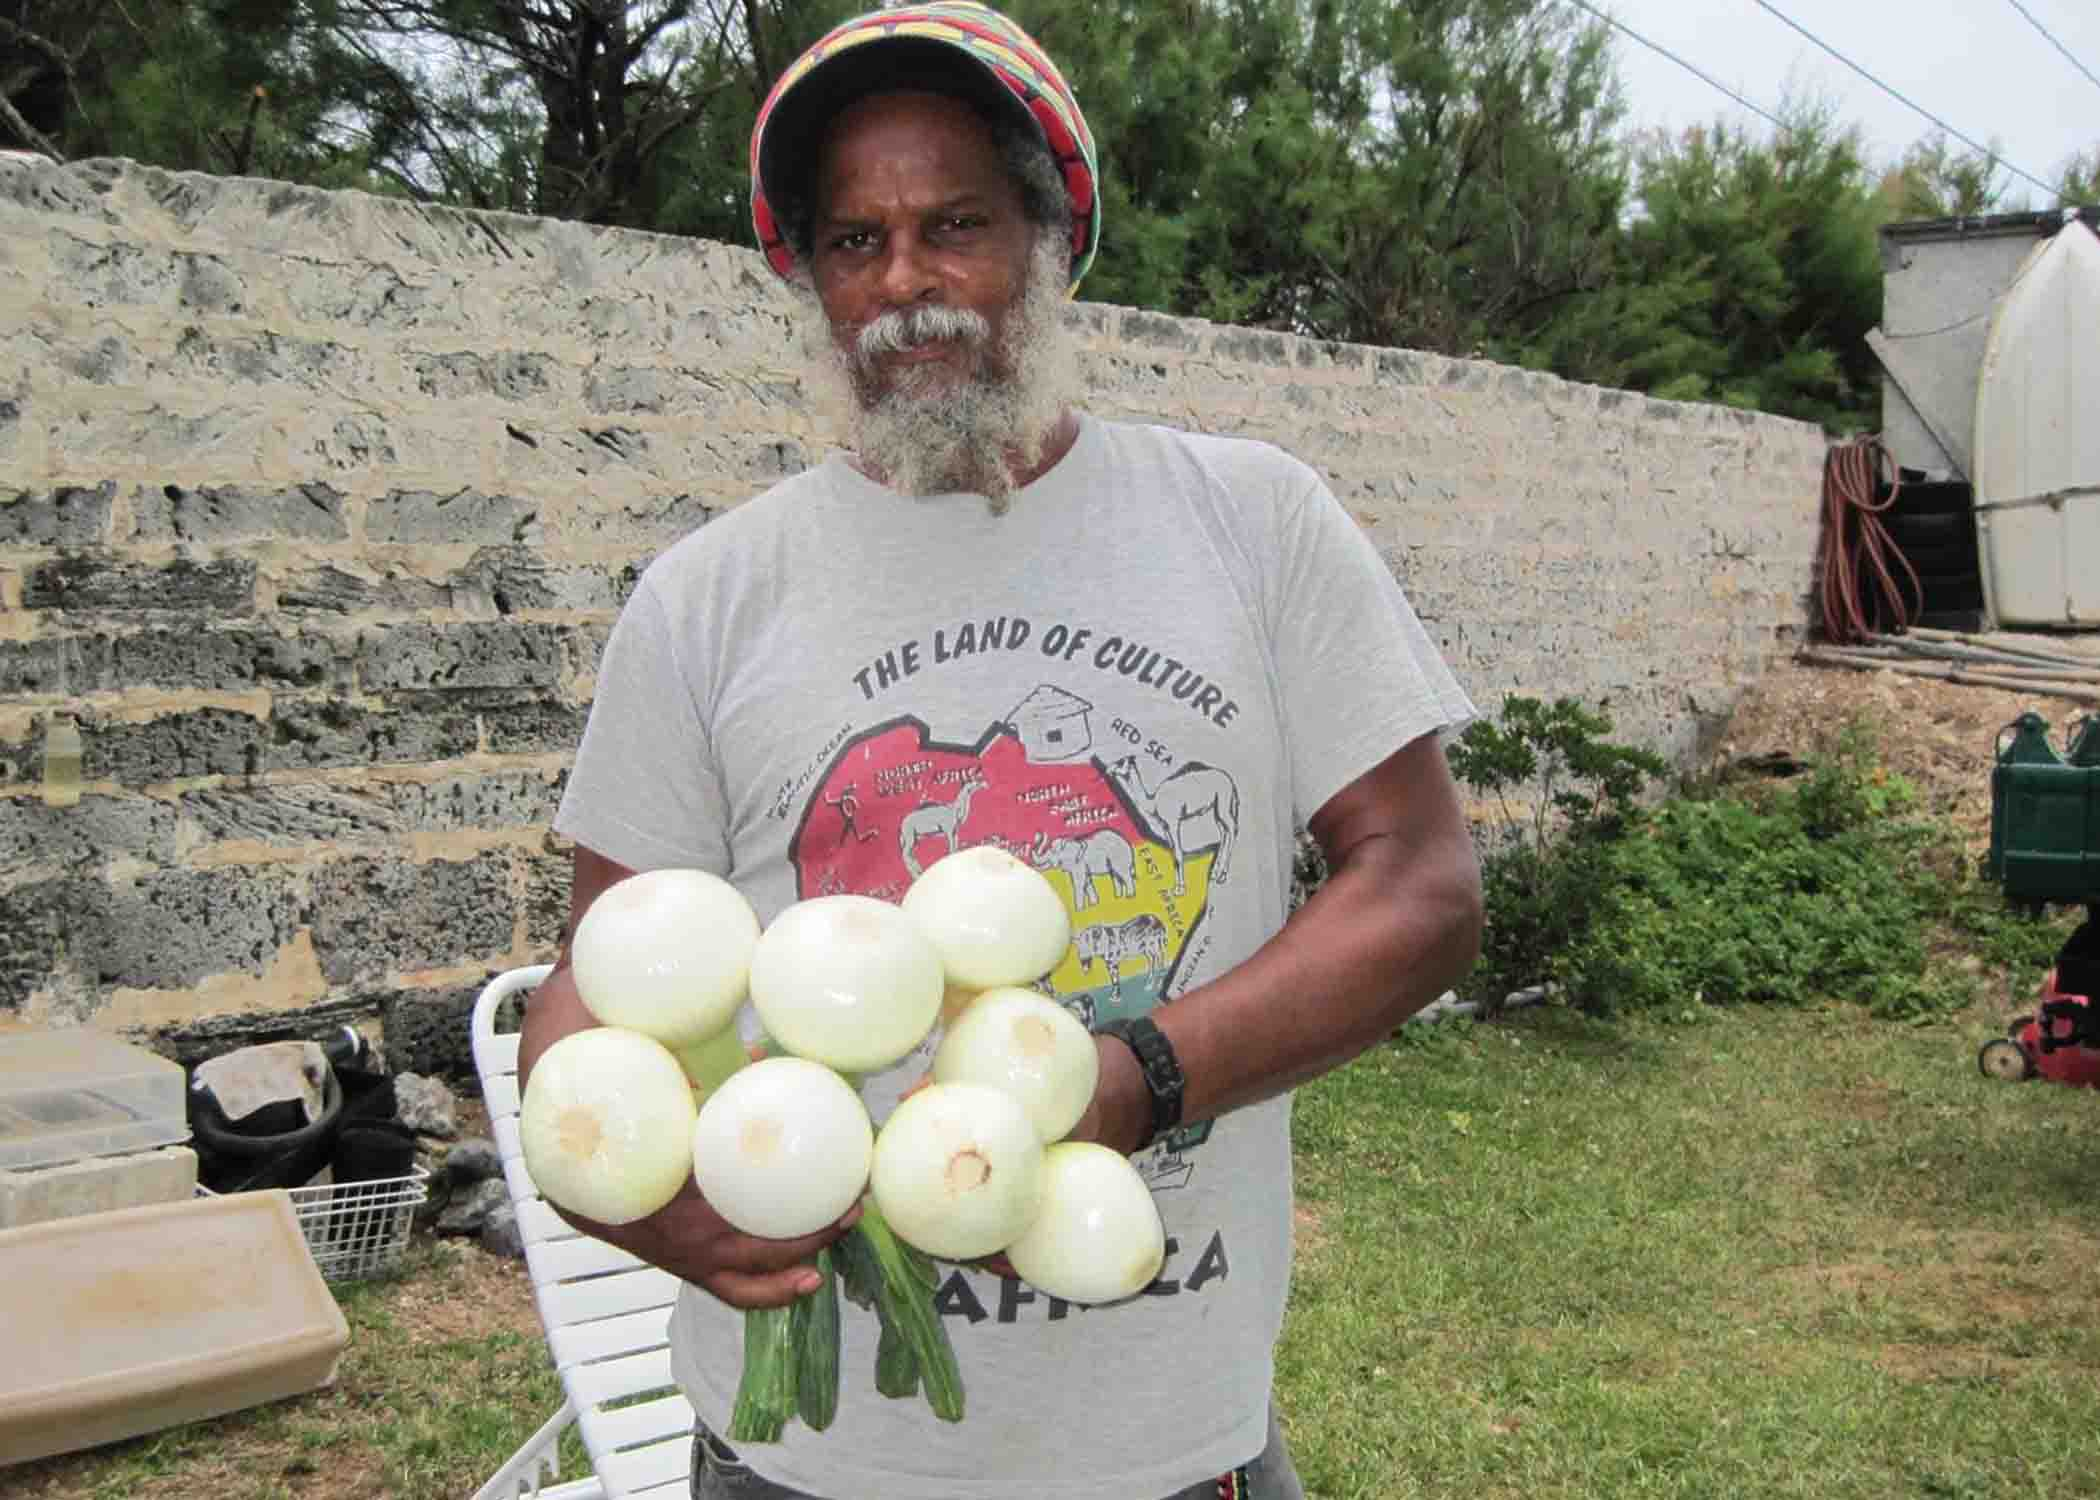 Roots: Gabre Swan of Roots Gardening holds a bunch of Bermuda onions, one of the most popular vegetables his farm produces and sells at the City Market.